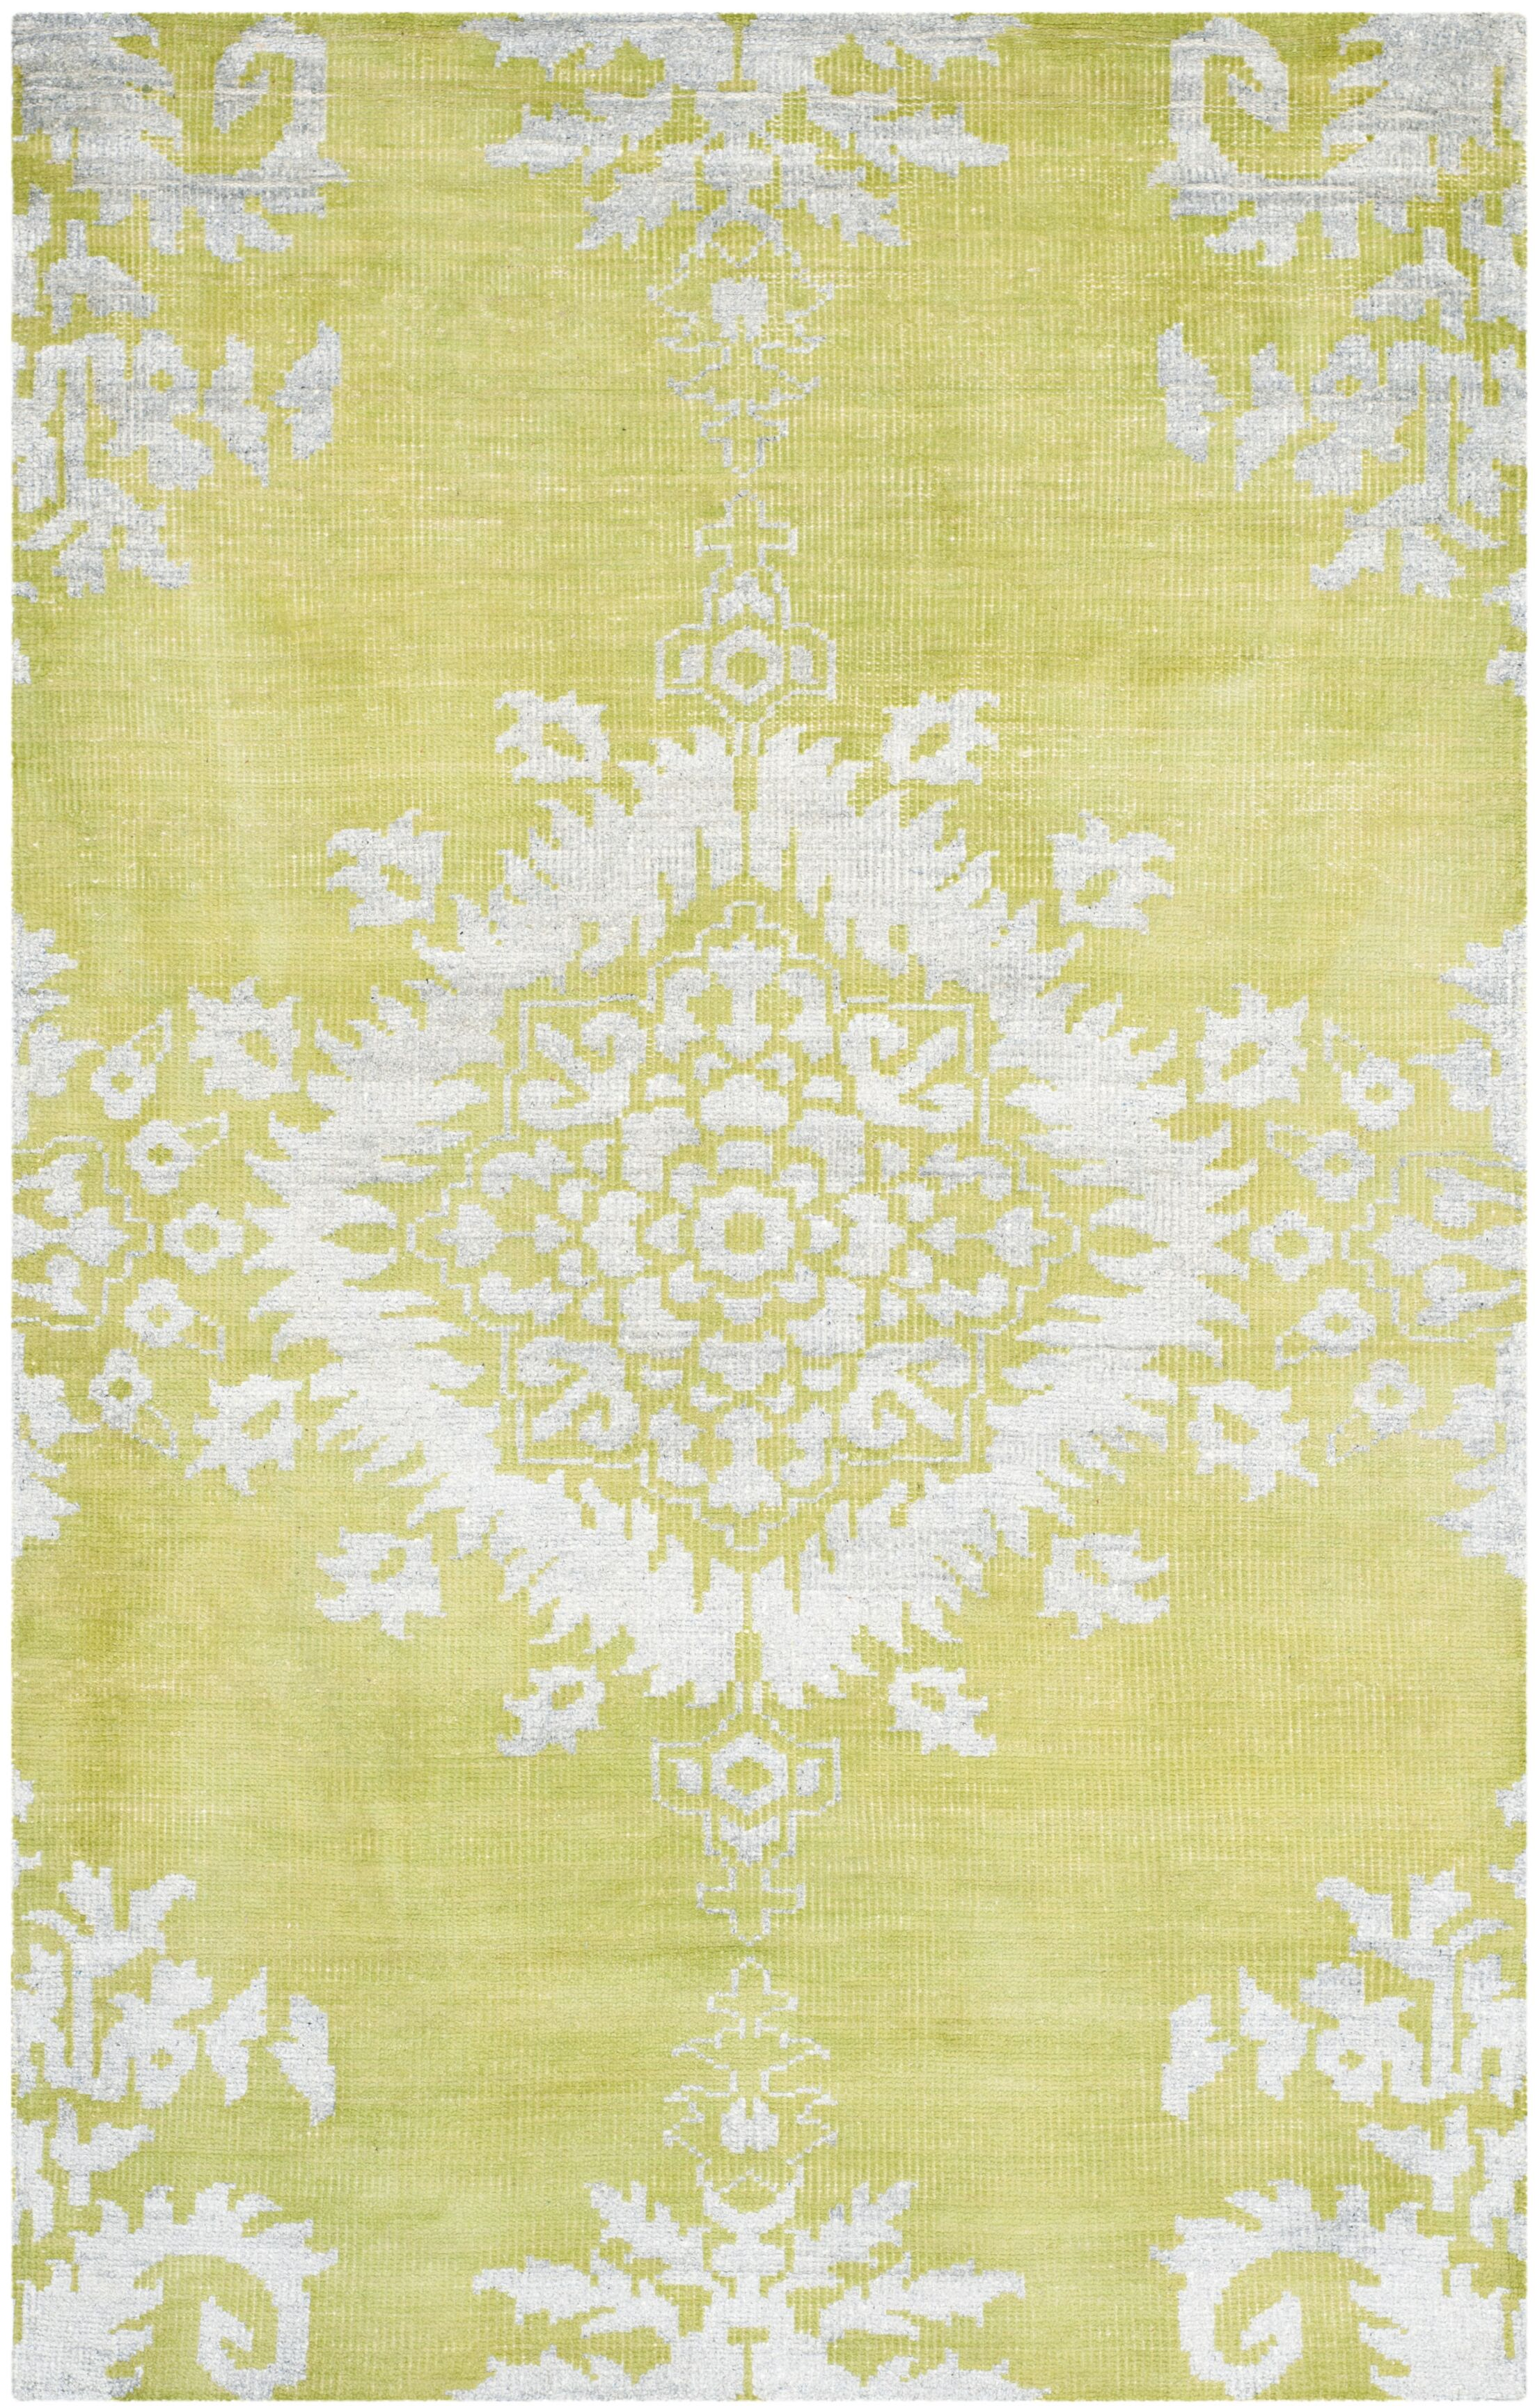 Collette Hand Woven Cotton Chartreuse Area Rug Rug Size: 4' x 6'